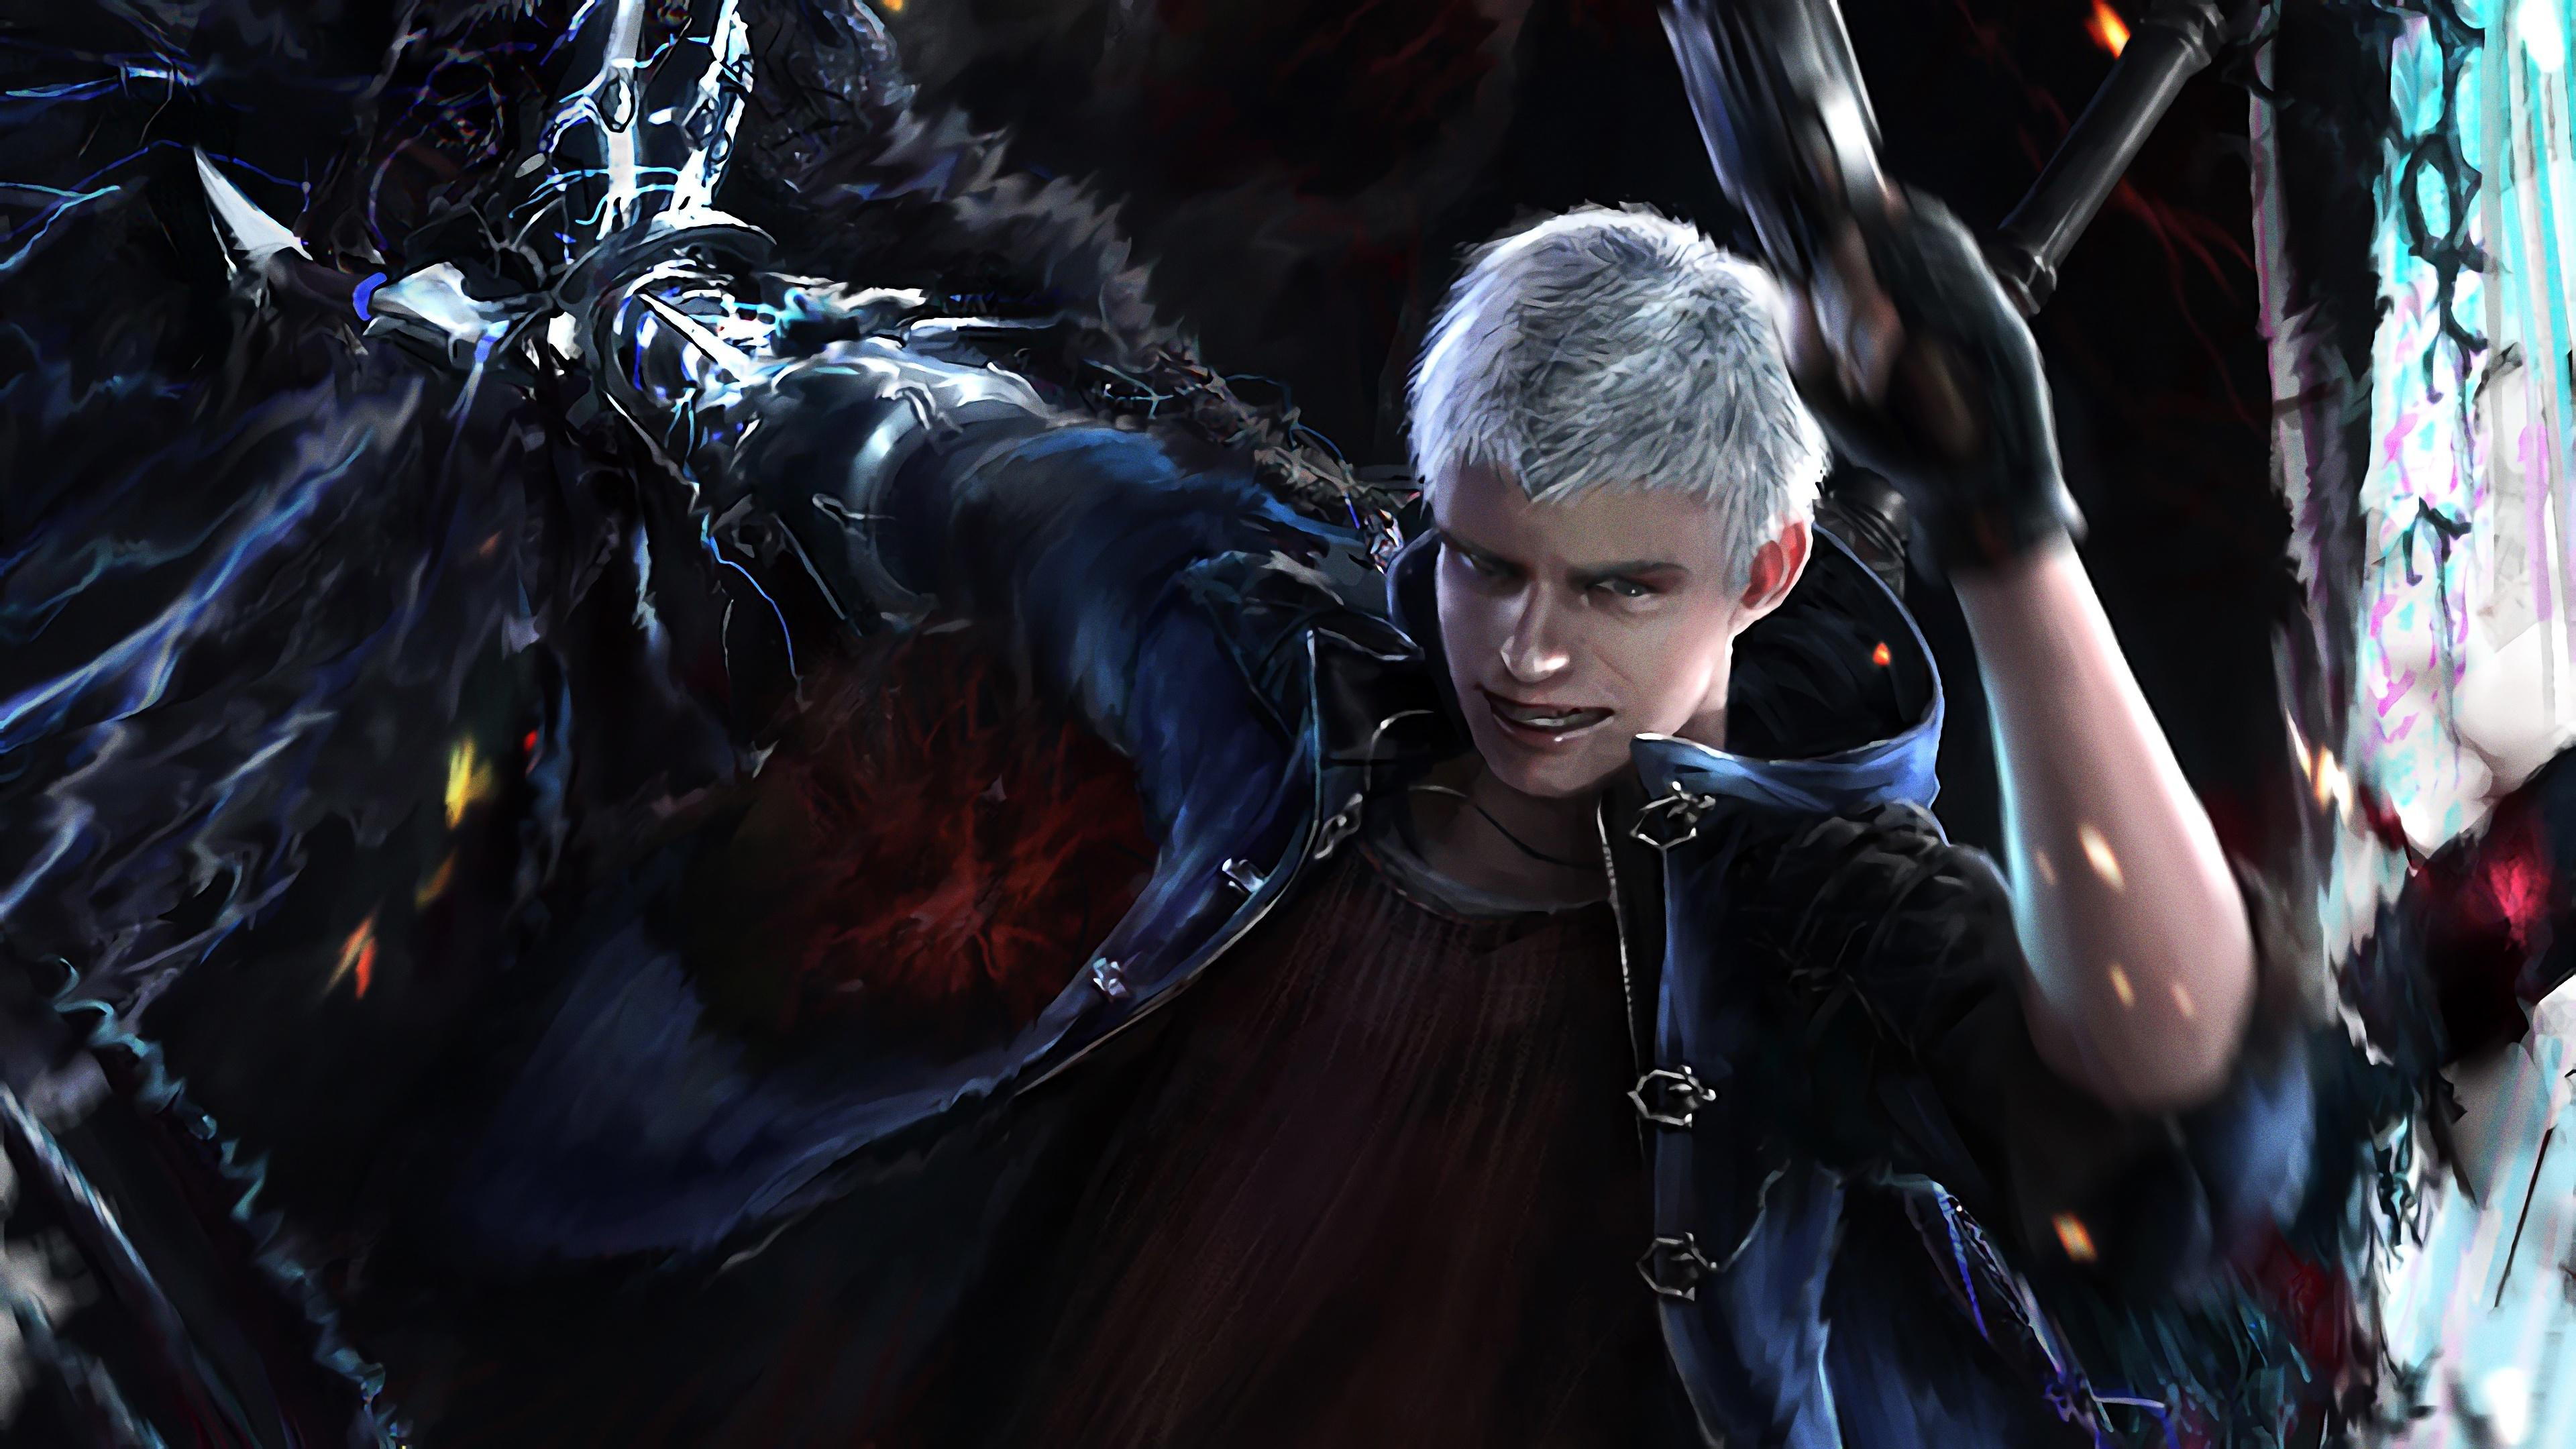 Devil May Cry Wallpapers Hd Wallpaper Download Hd